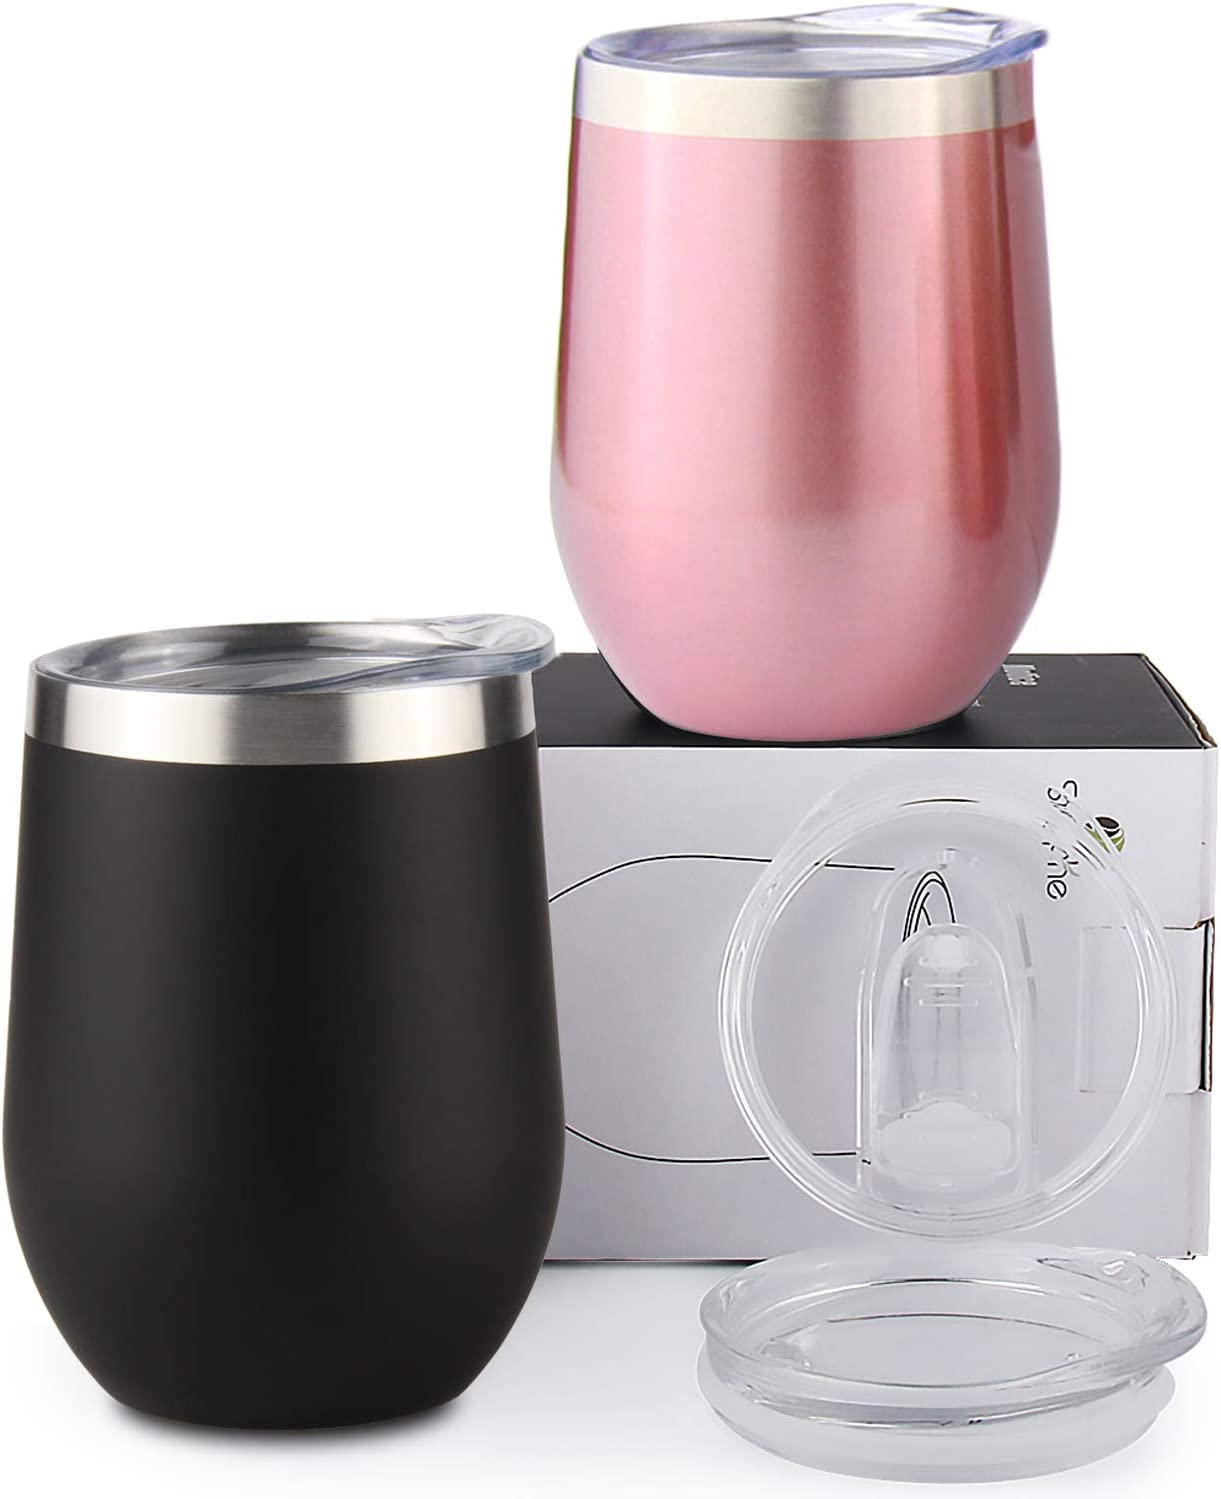 Sivaphe Wine Glasses Tumbler Camping Double Walled Coffee Cups Stainless Steel Insulated Tumblers for Hot Drinks with Lids 12OZ Set (Rose GoldBlack)